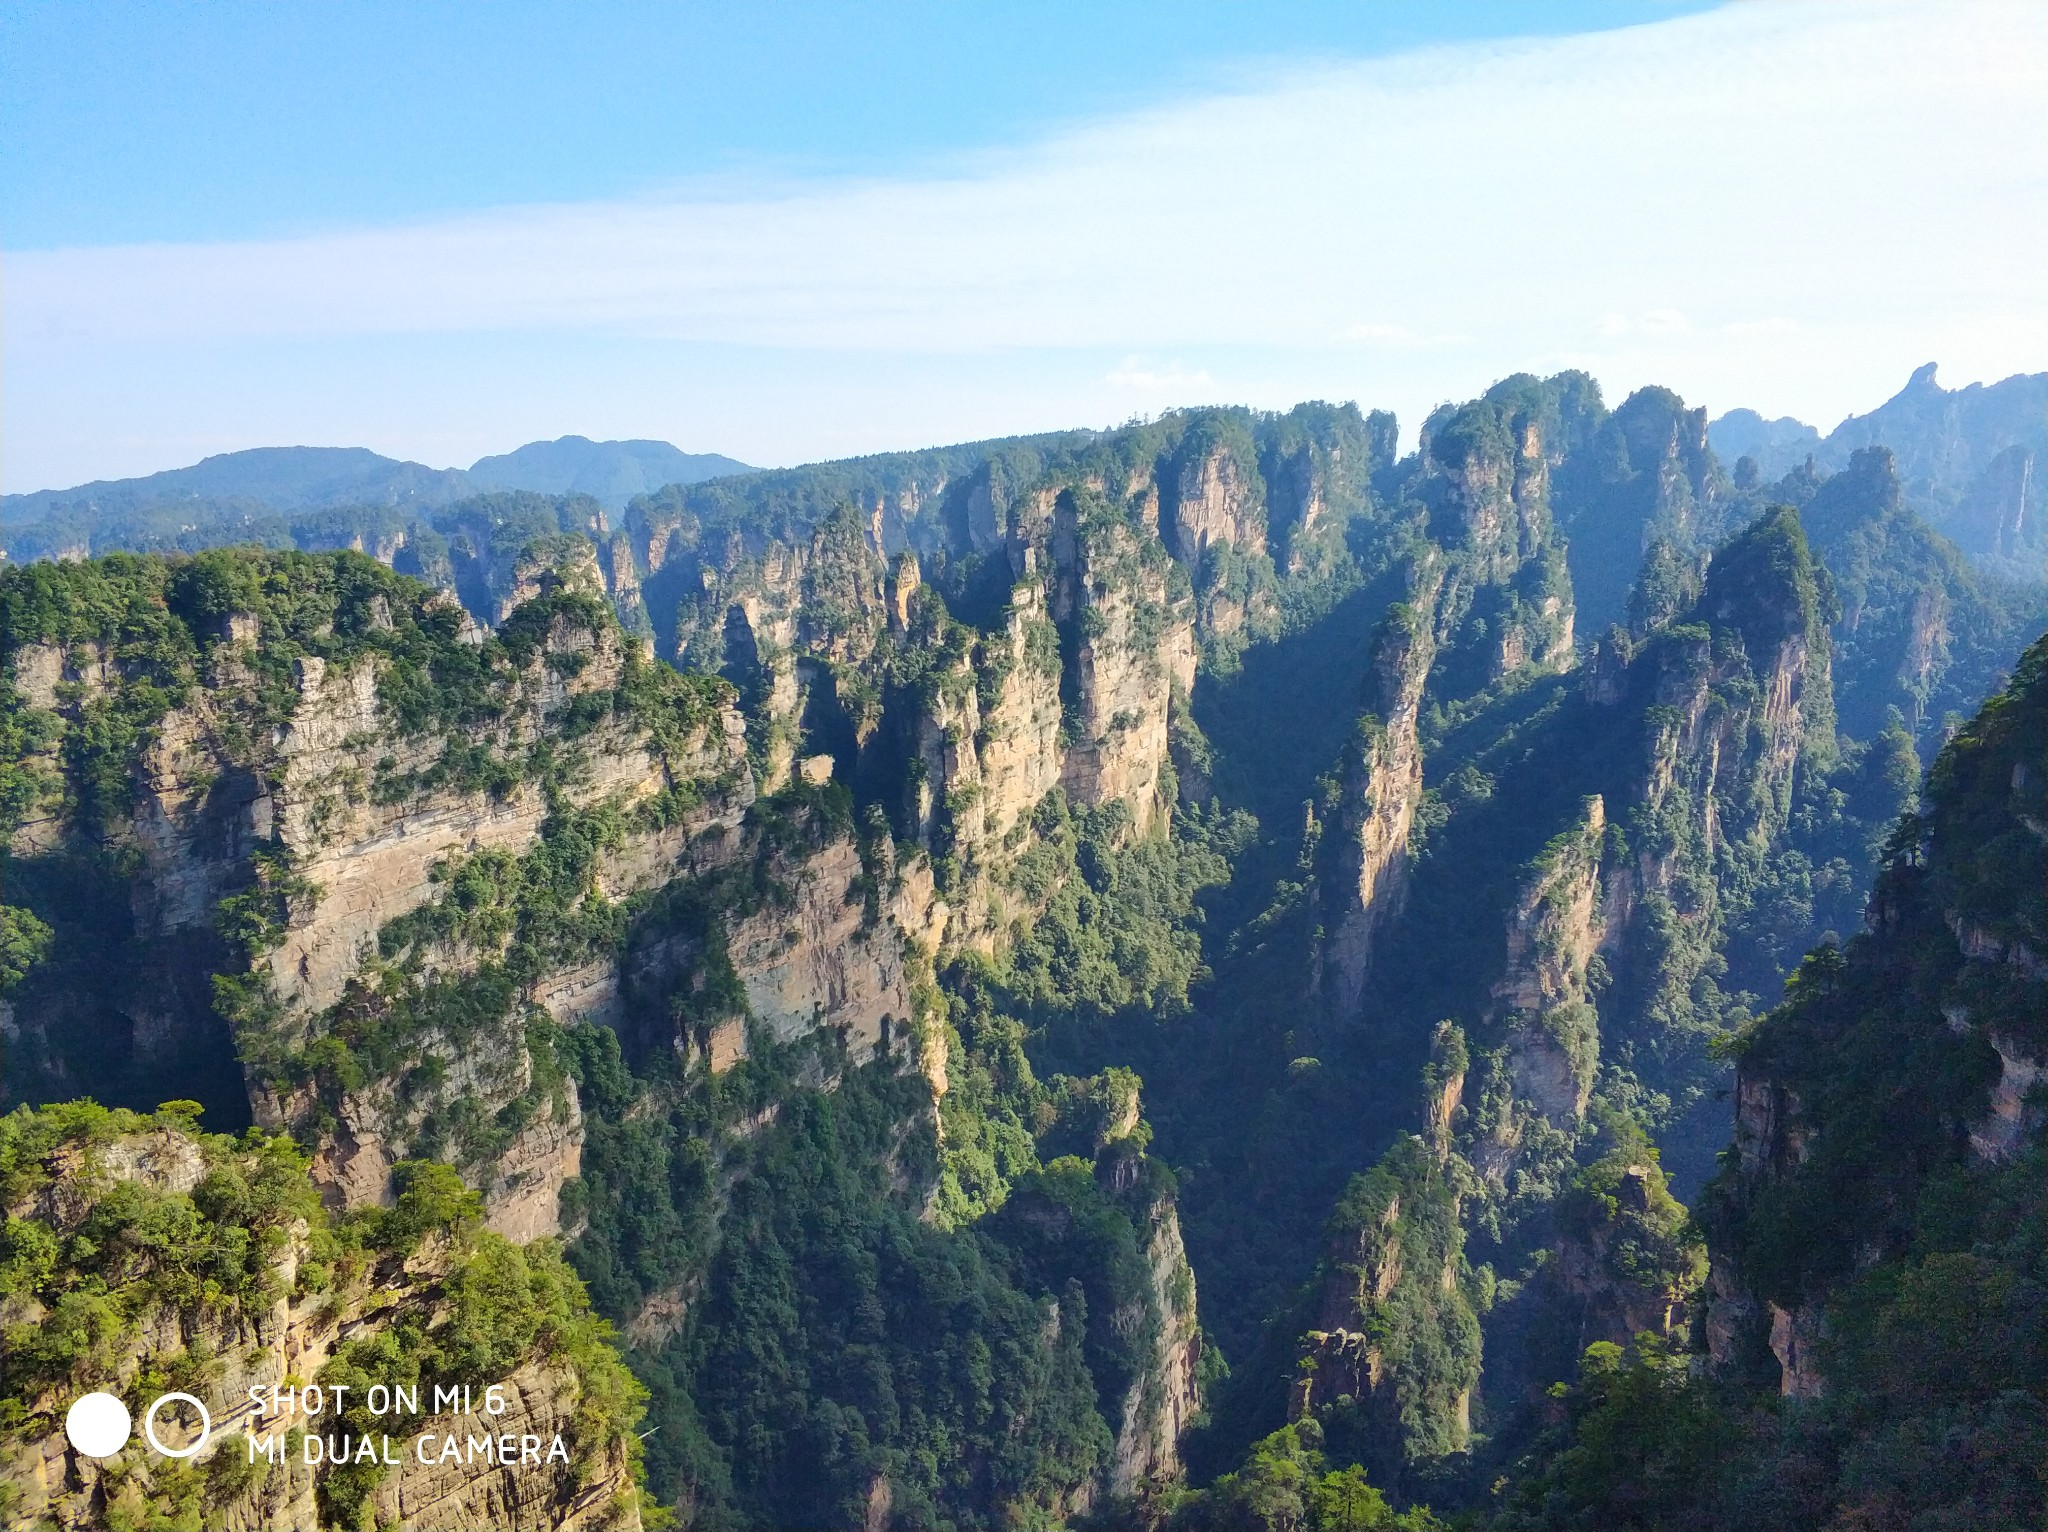 china zhangjiajie yangjiajie tour